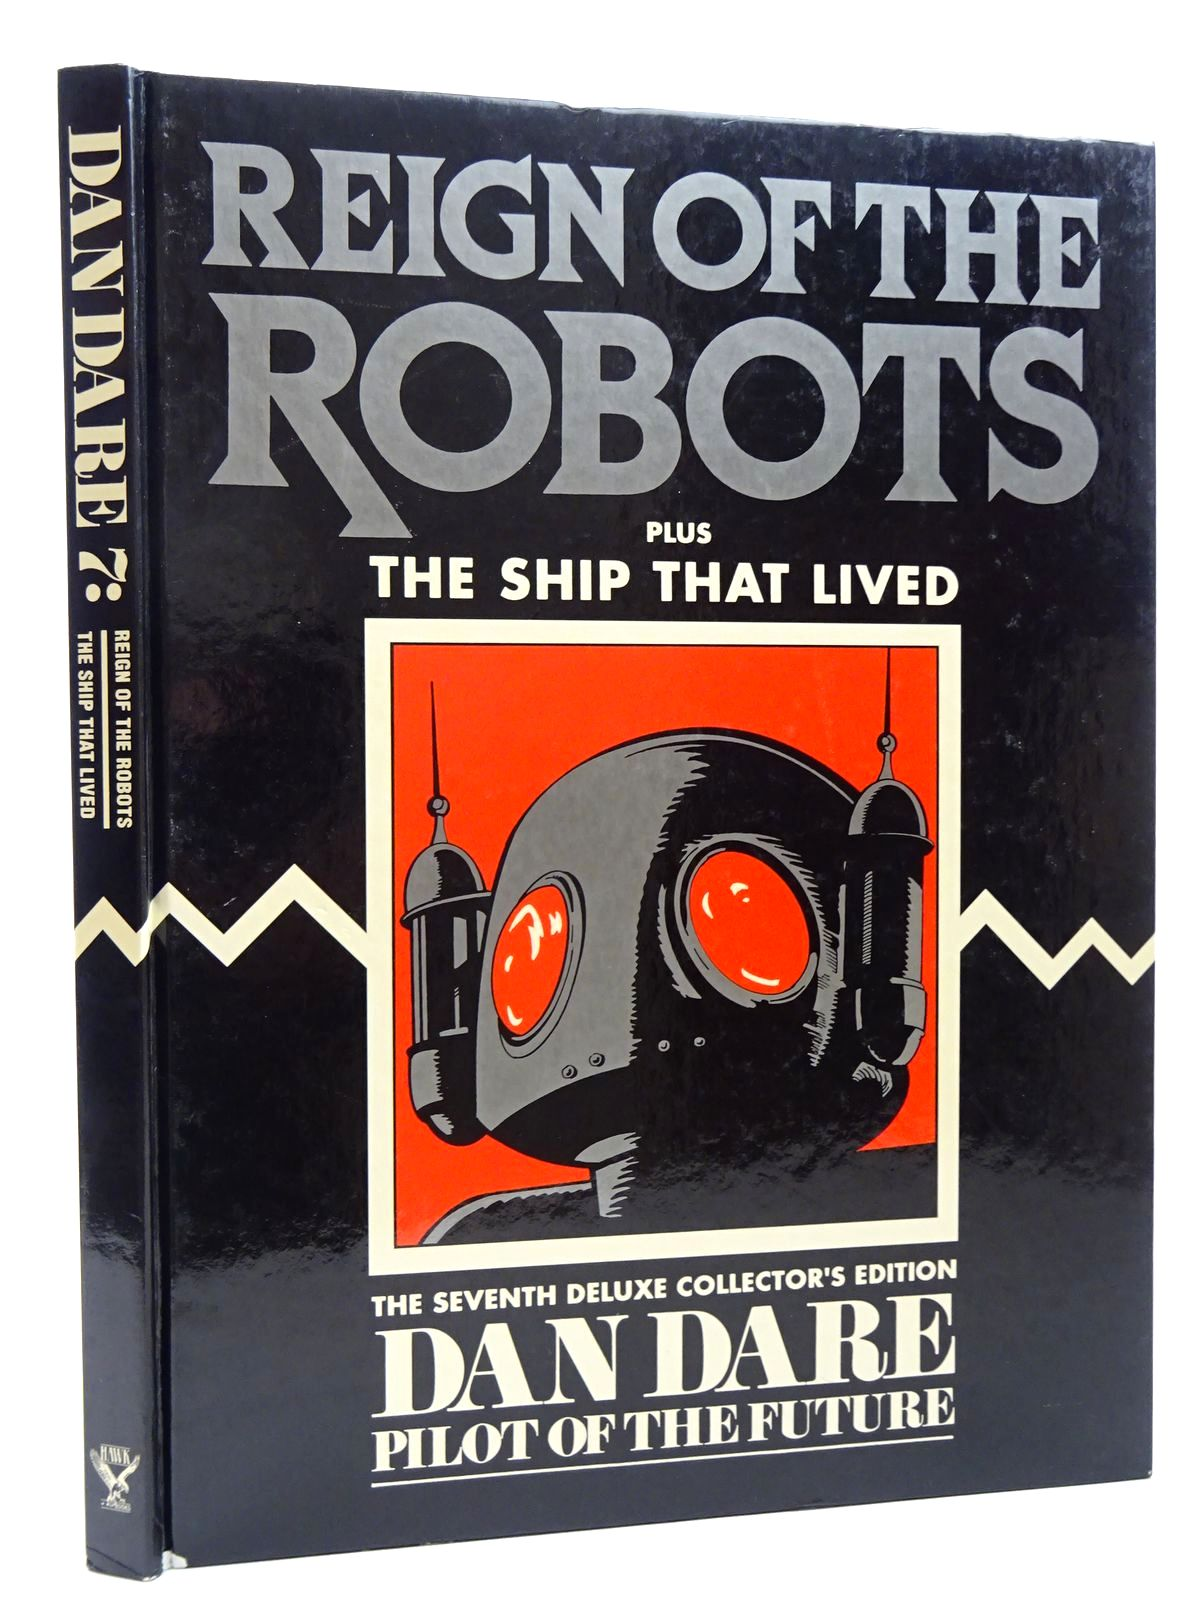 Photo of THE SEVENTH DELUXE COLLECTOR'S EDITION OF DAN DARE PILOT OF THE FUTURE REIGN OF THE ROBOTS PLUS THE SHIP THAT LIVED- Stock Number: 2124557